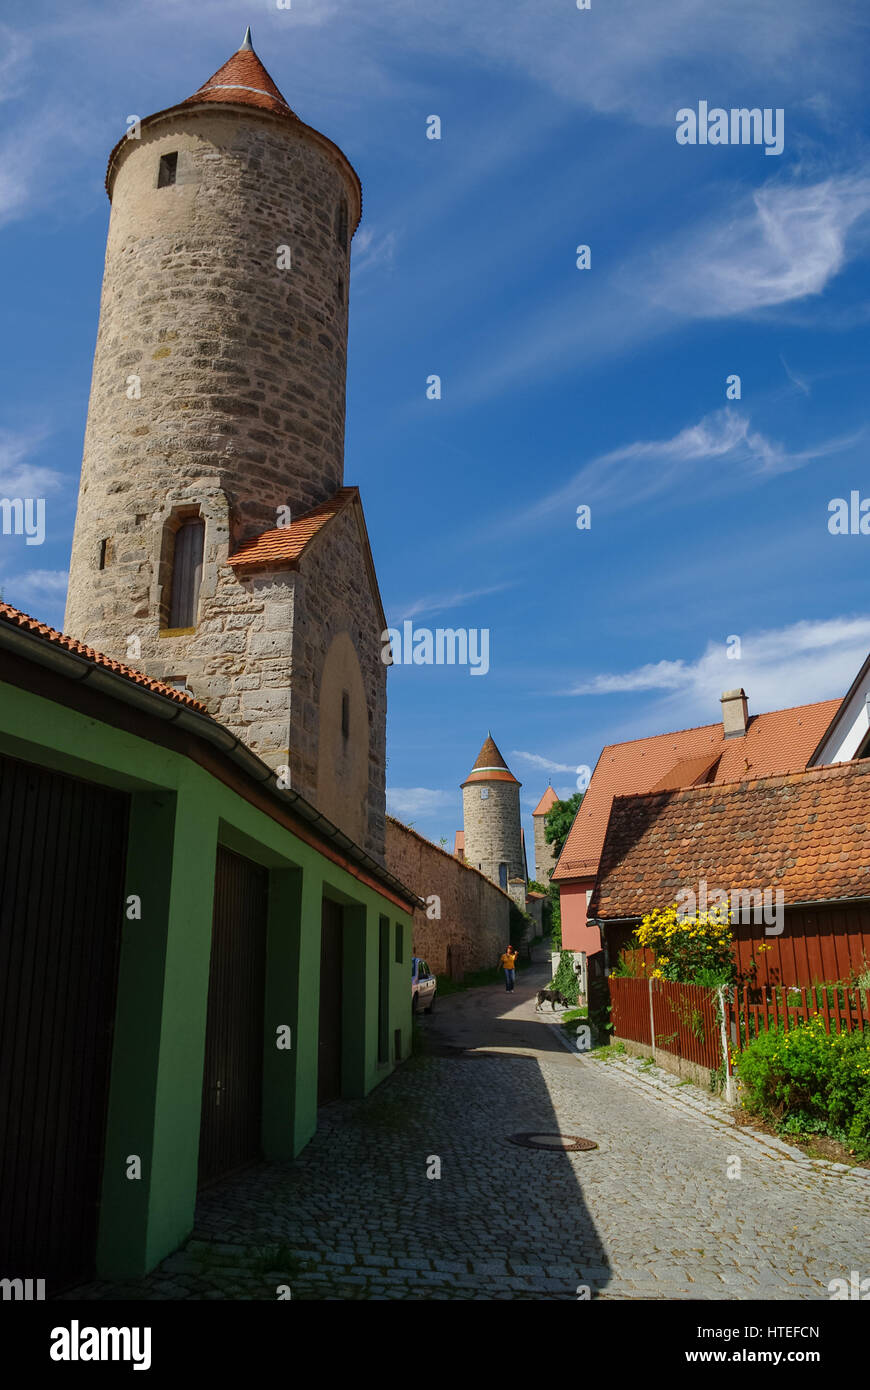 City walls and towers of Dinkelsbuhl, one of the archetypal medieval towns on the German Romantic Road. Germany - Stock Image